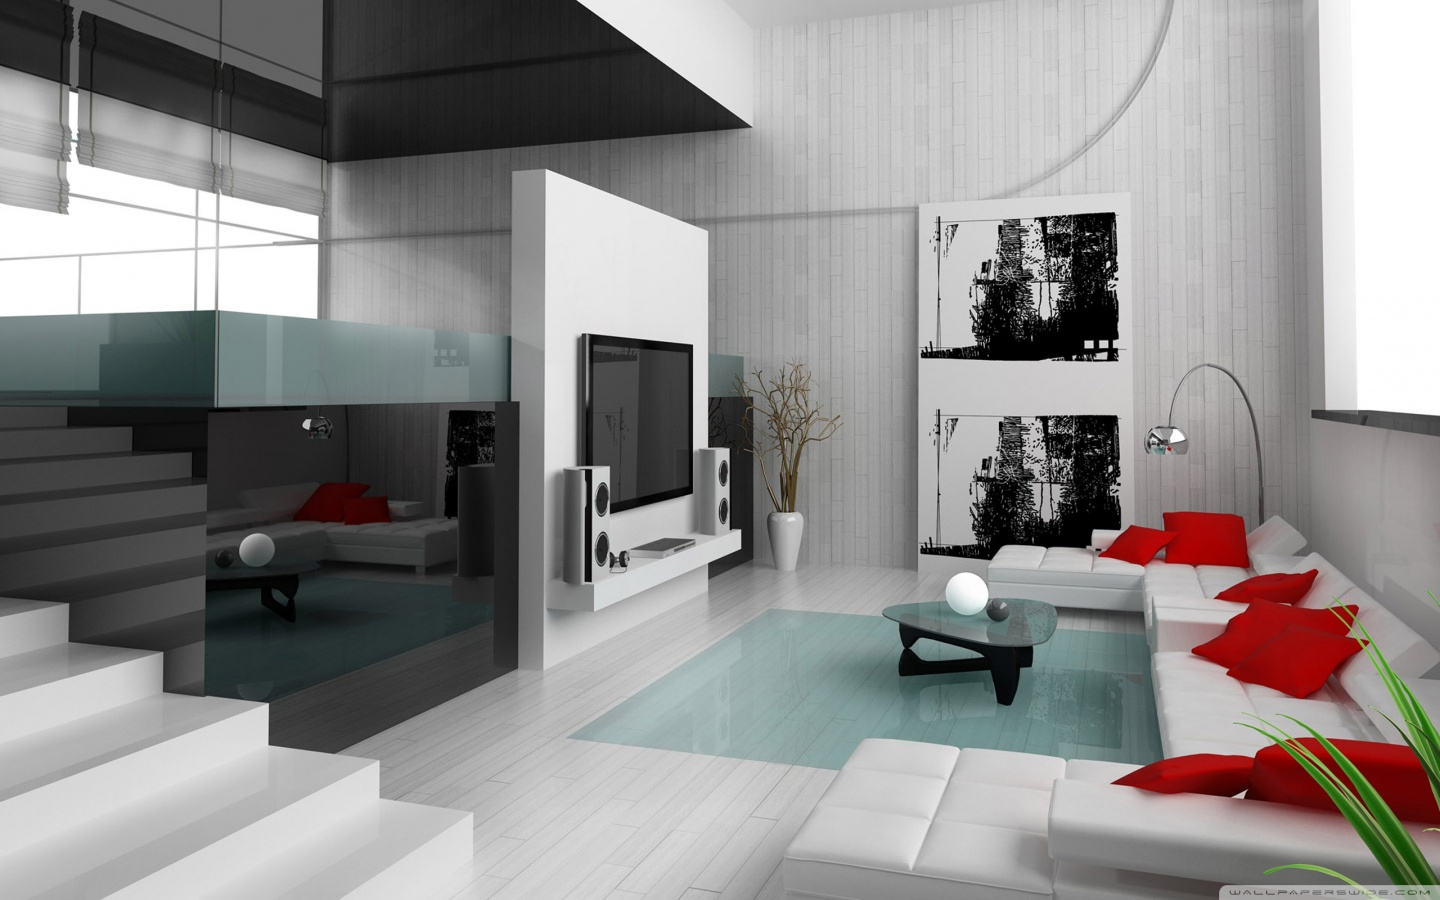 Minimalist interior design imagination art architecture for Contemporary home decor